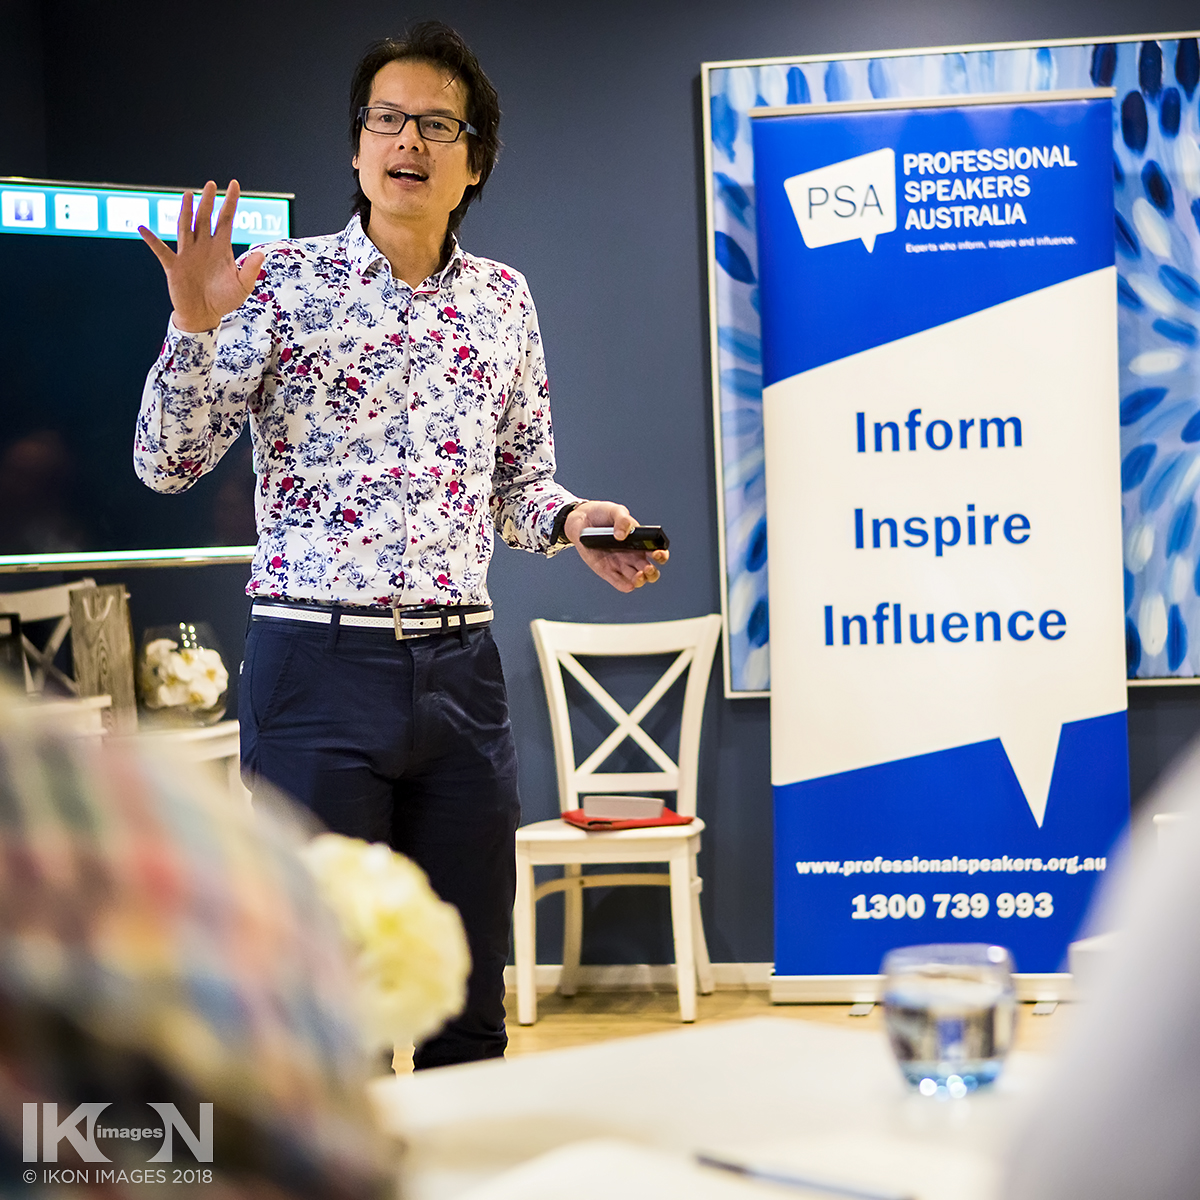 IKON IMAGES, Event Photography, Melbourne, Professional Speakers Australia